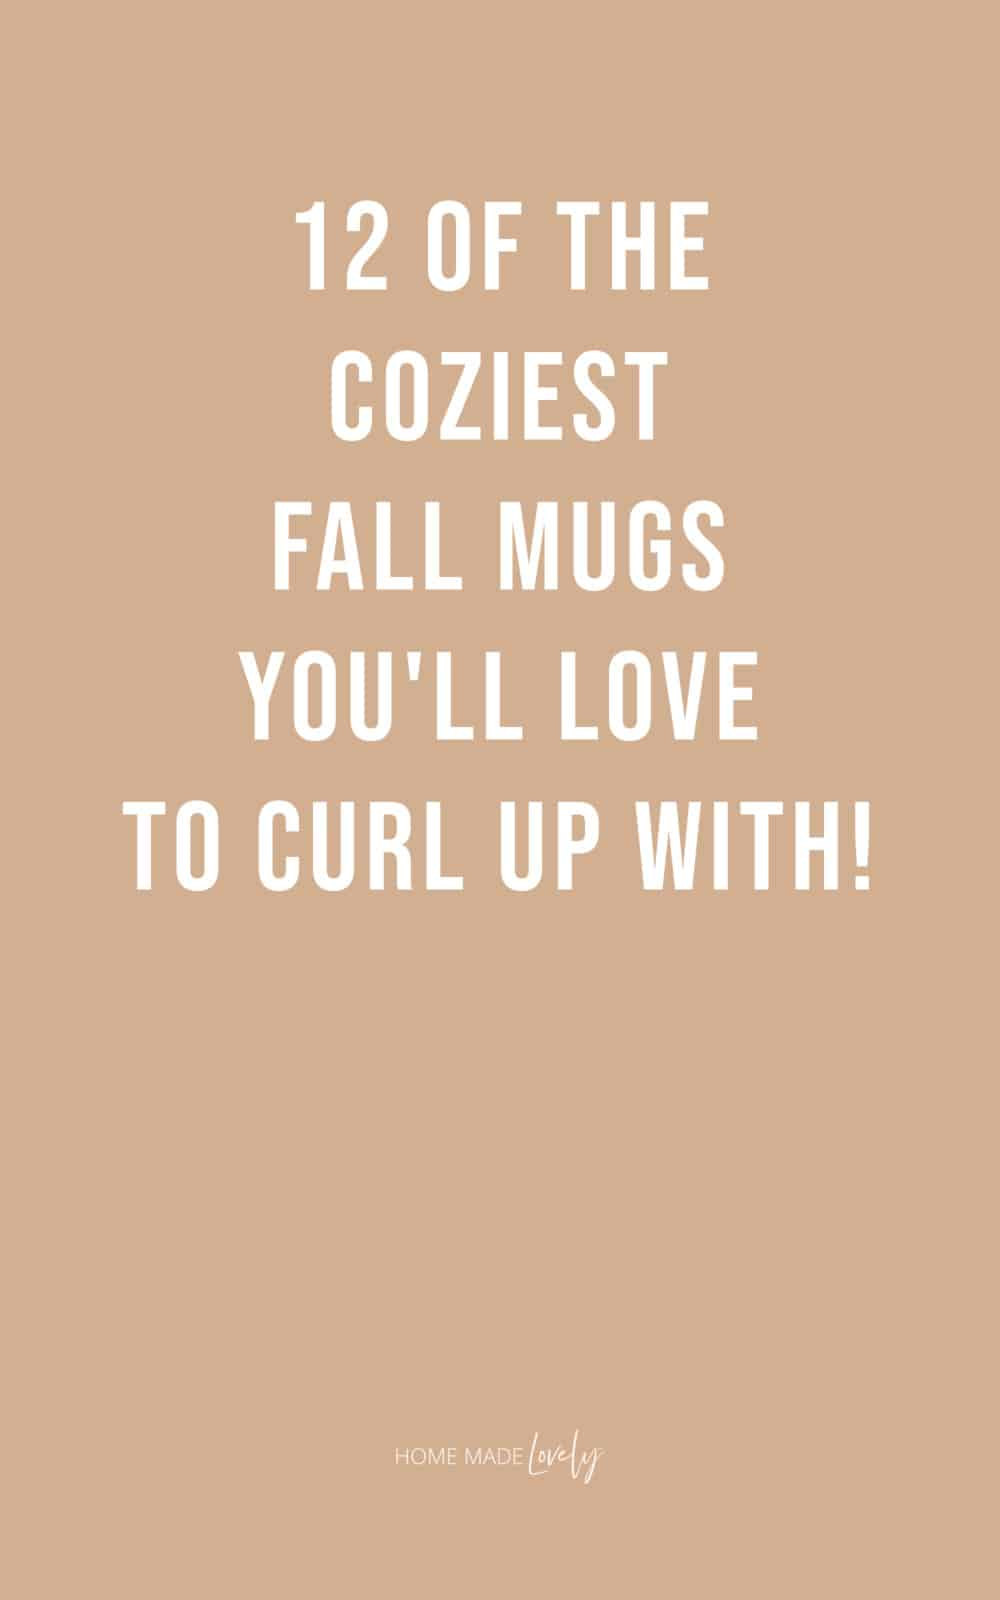 12 of the coziest fall mugs white text on muted orange background